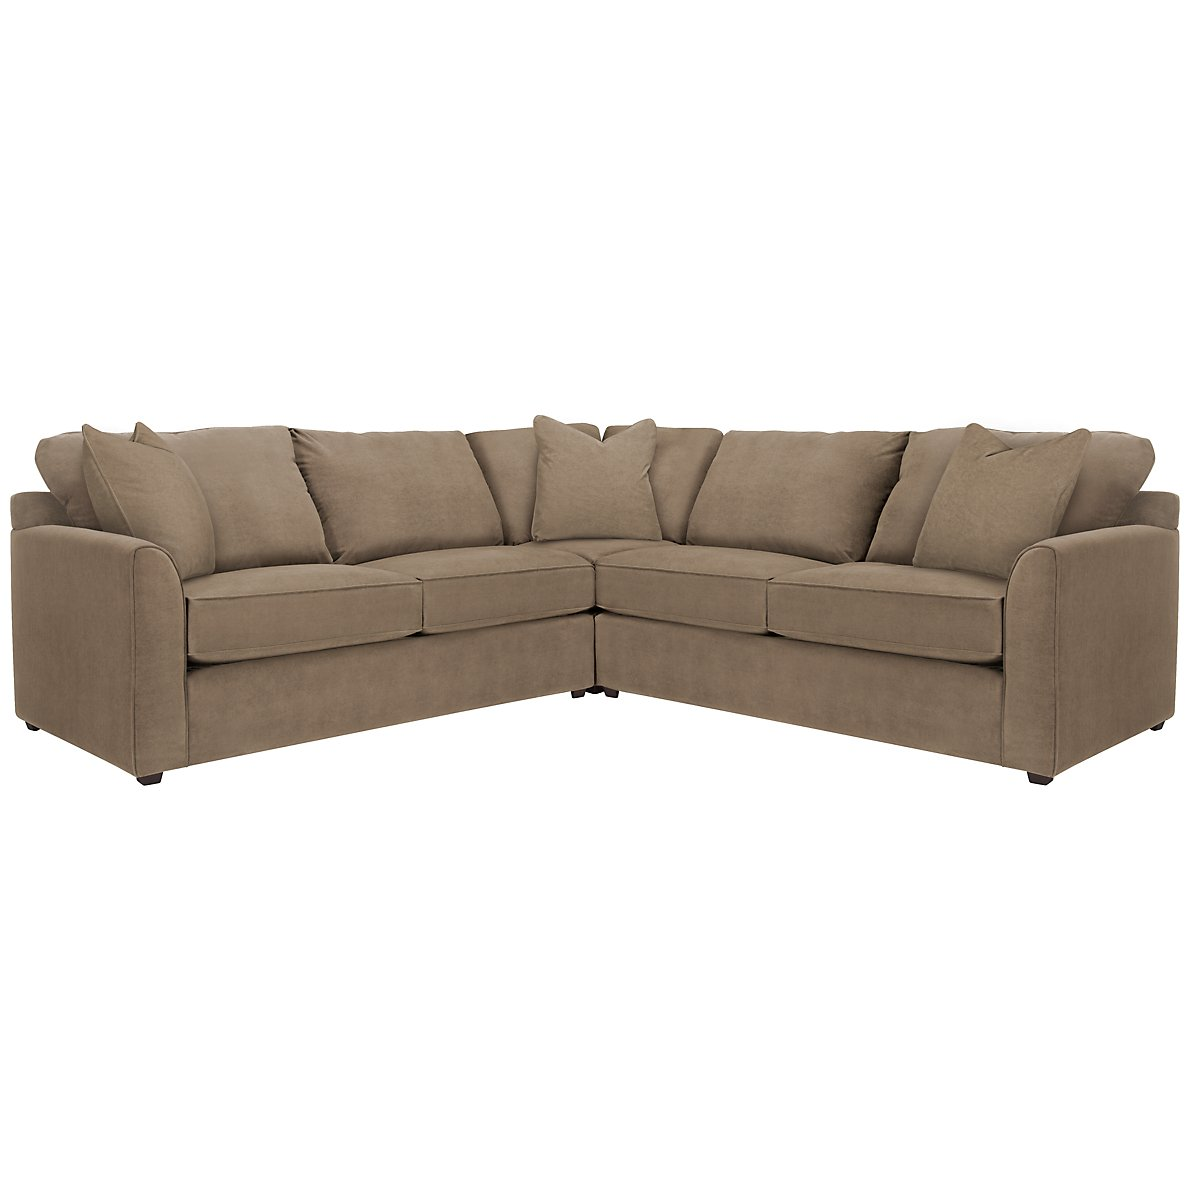 Express3 Light Brown Microfiber Small Two-Arm Sectional